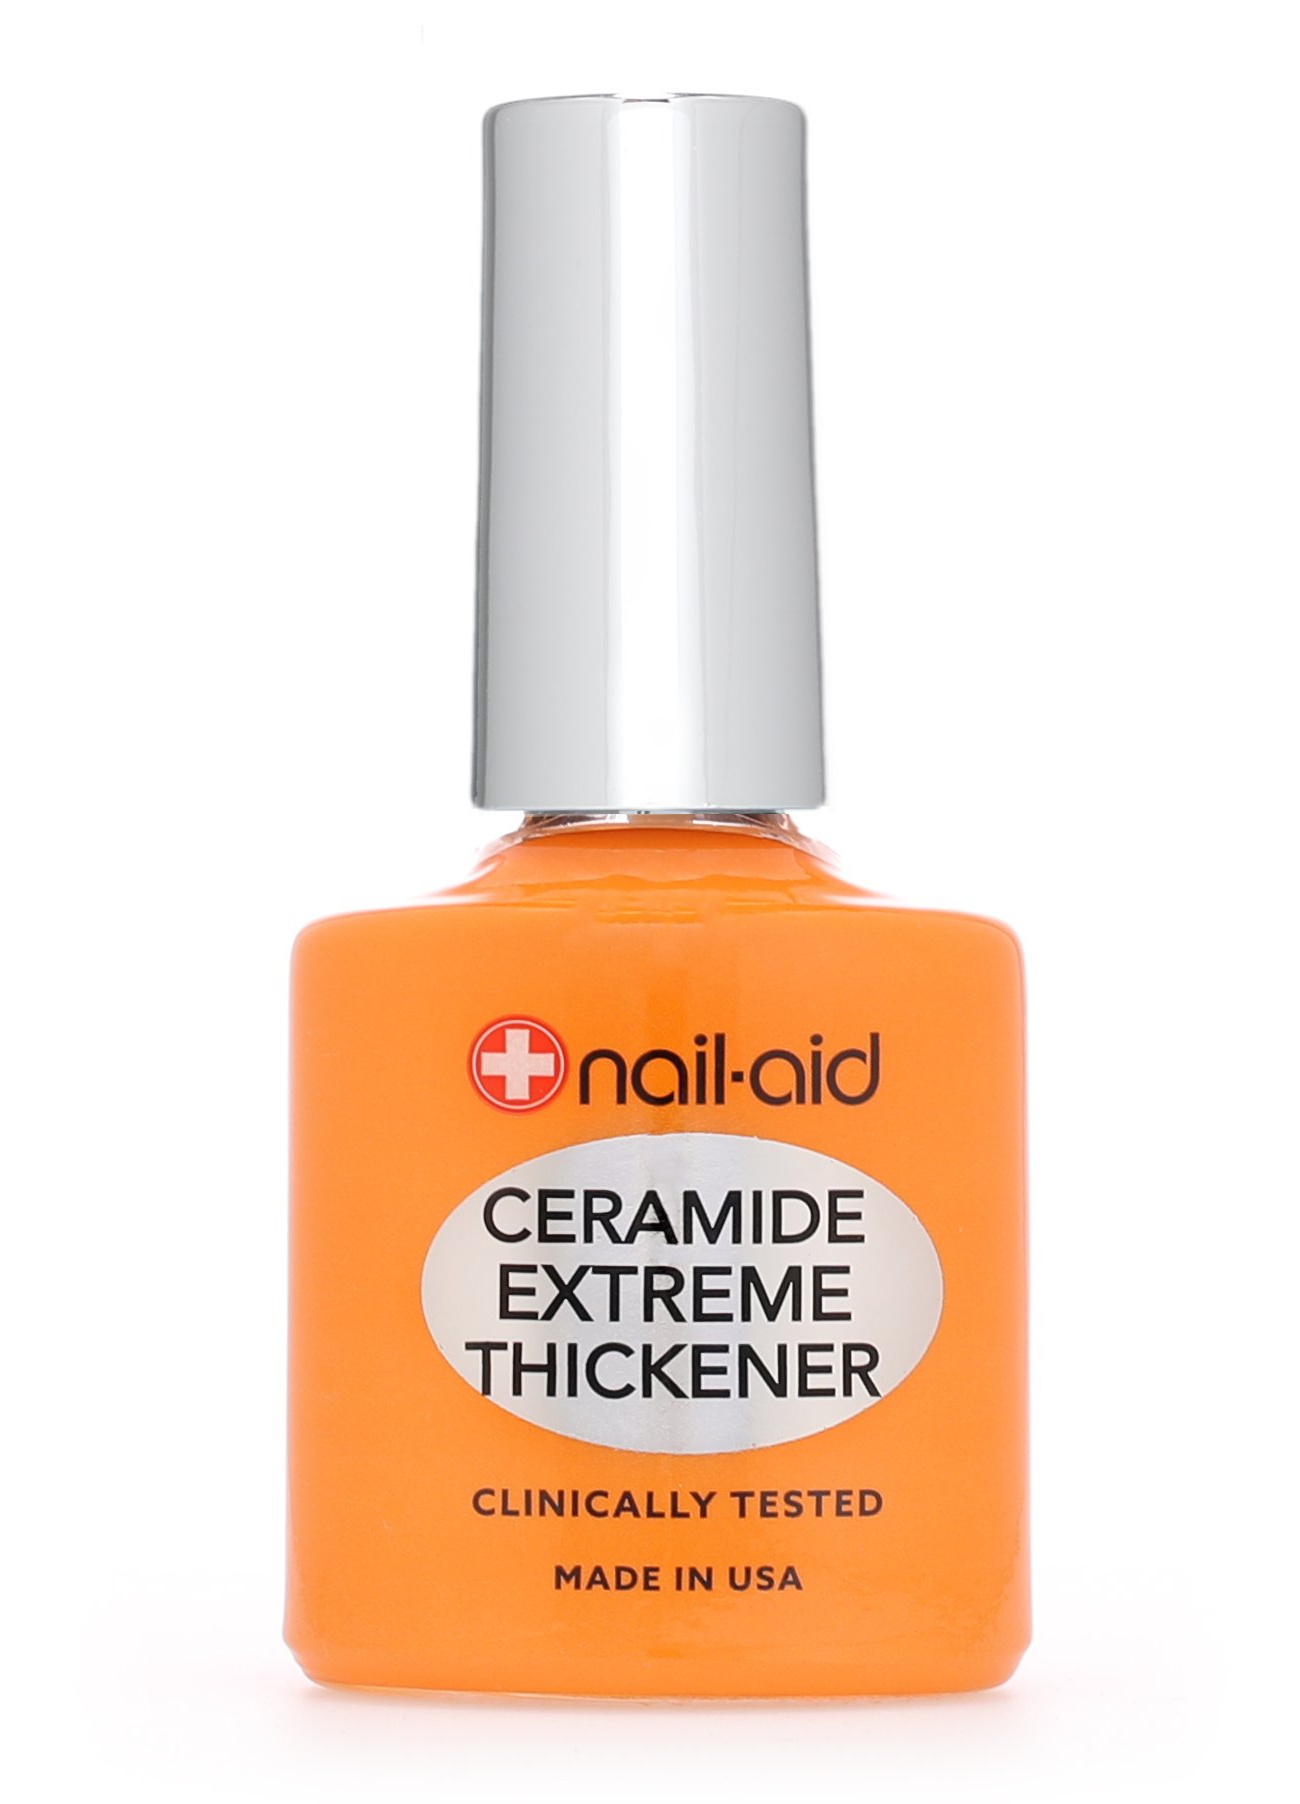 Nail Aid Ceramide Extreme Thickener